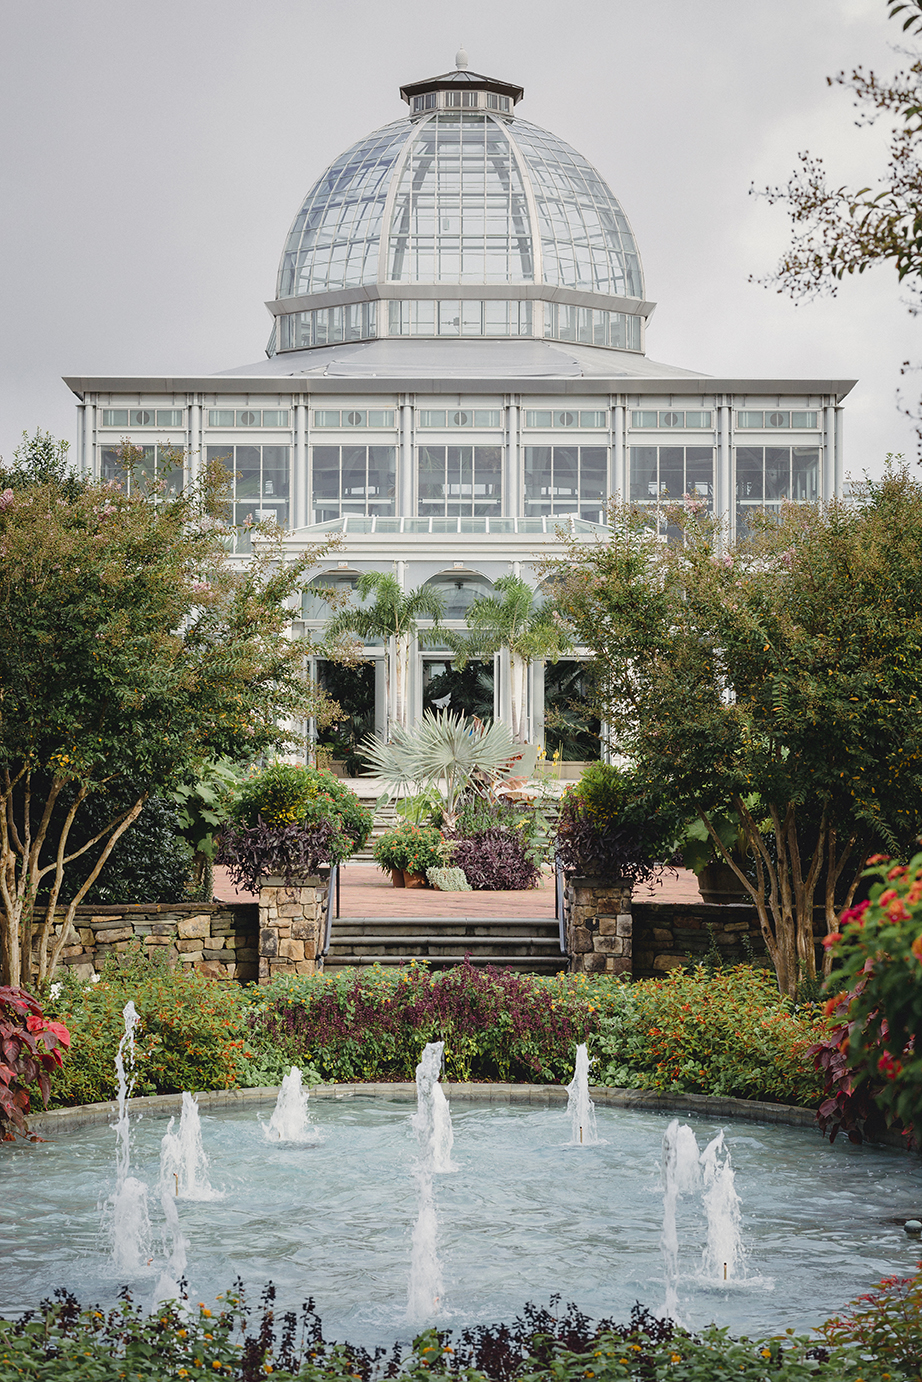 LewisGinter_Greenhouse_Botanicals_0008.jpg